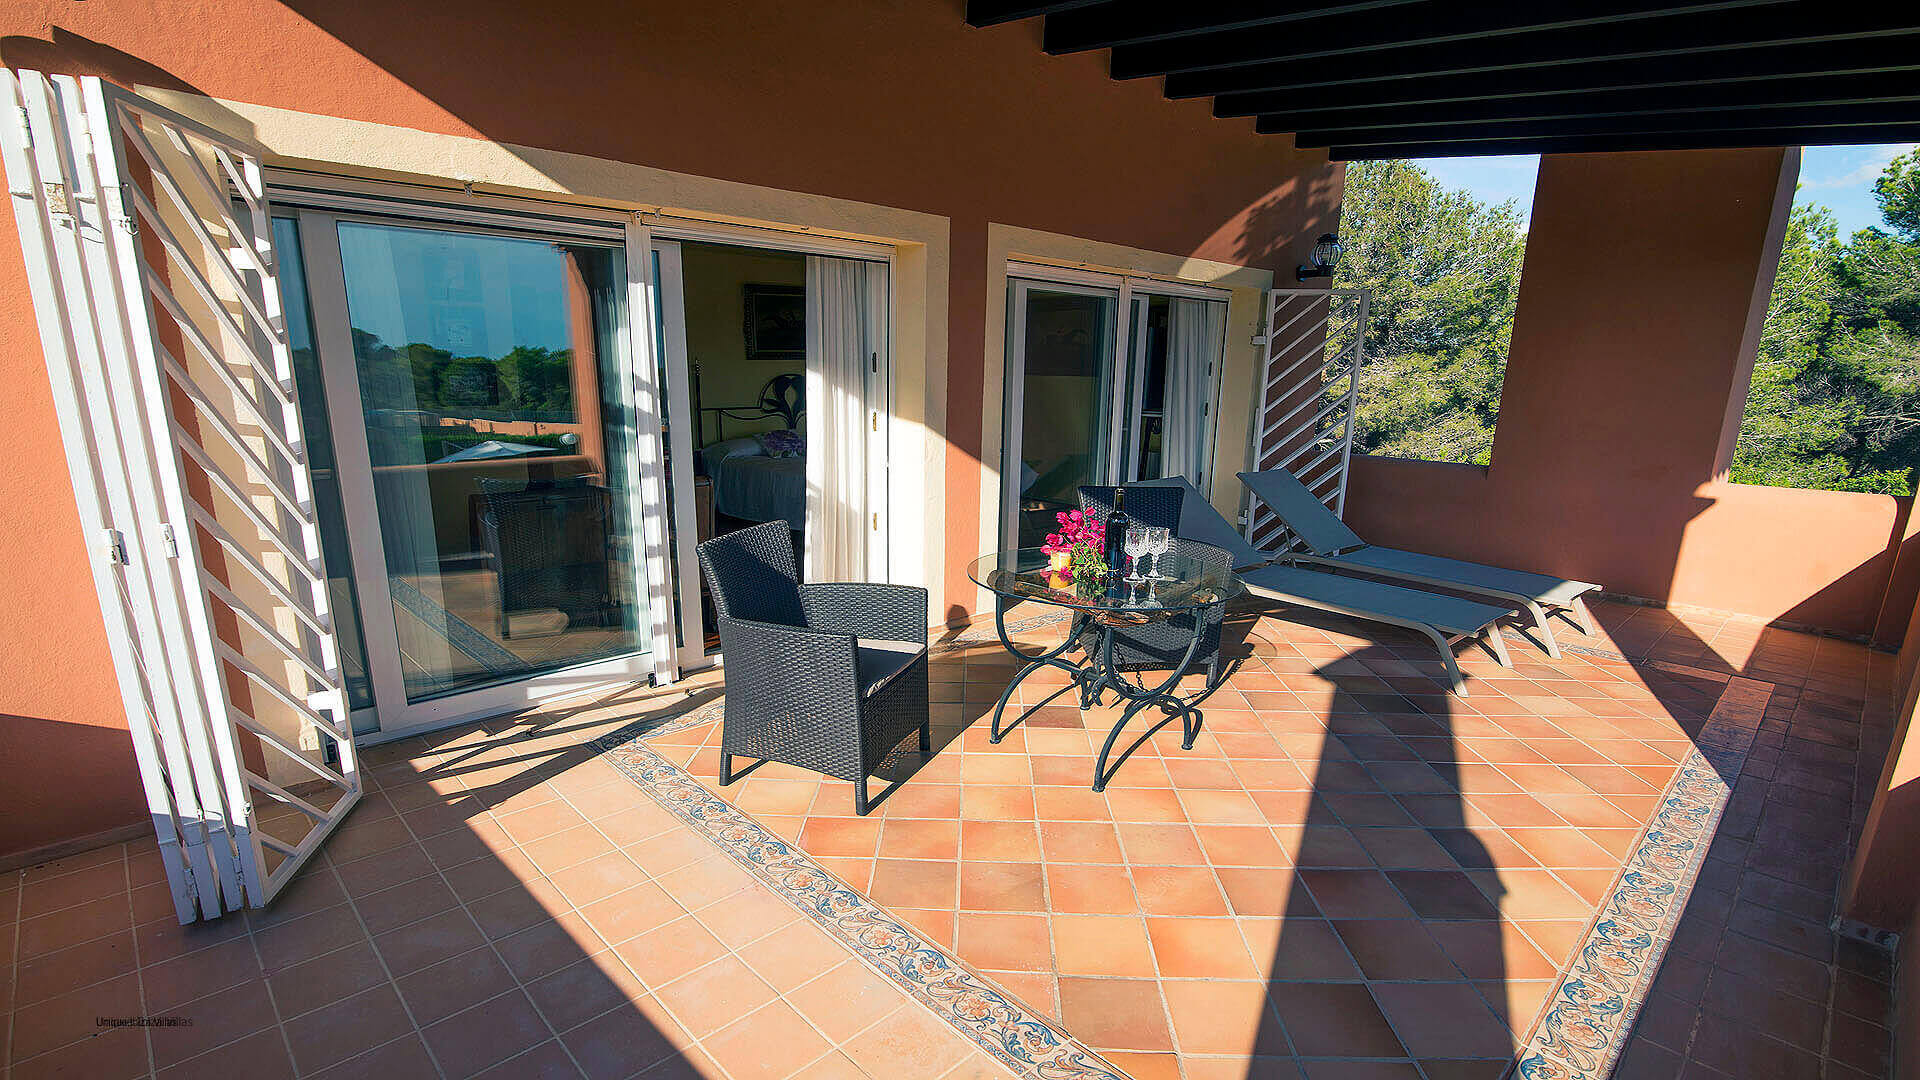 Cana Lucia Ibiza 28 Bedroom 1 Terrace